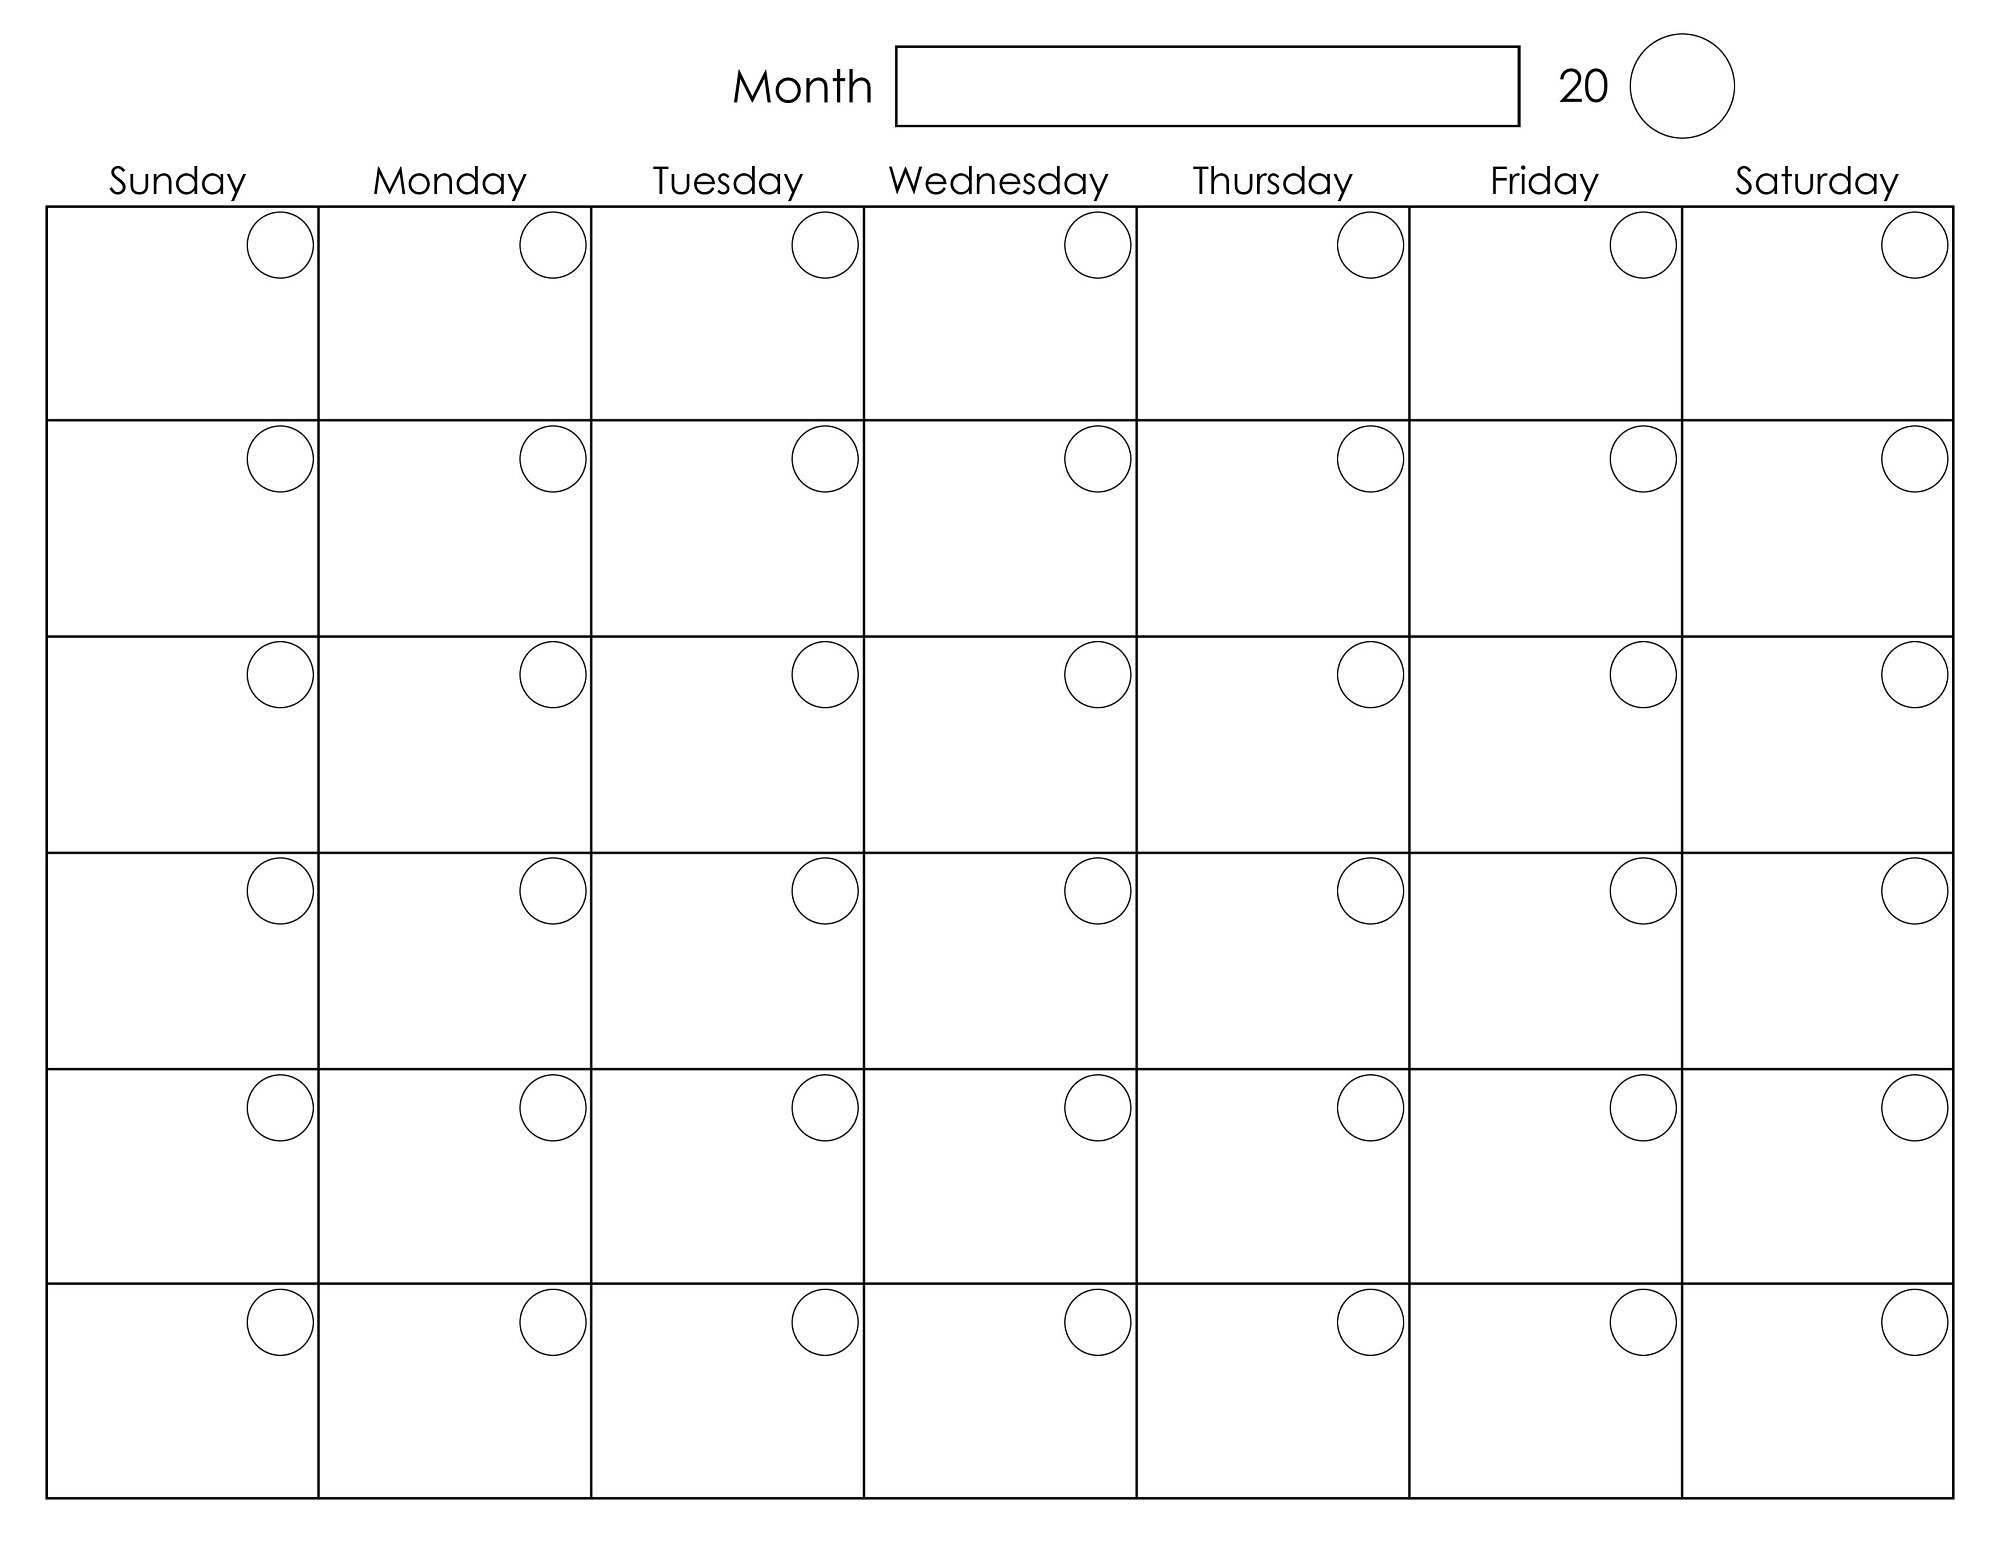 Printable Monthly Calendar Kindergarten : Blank weekly calendars printable activity shelter